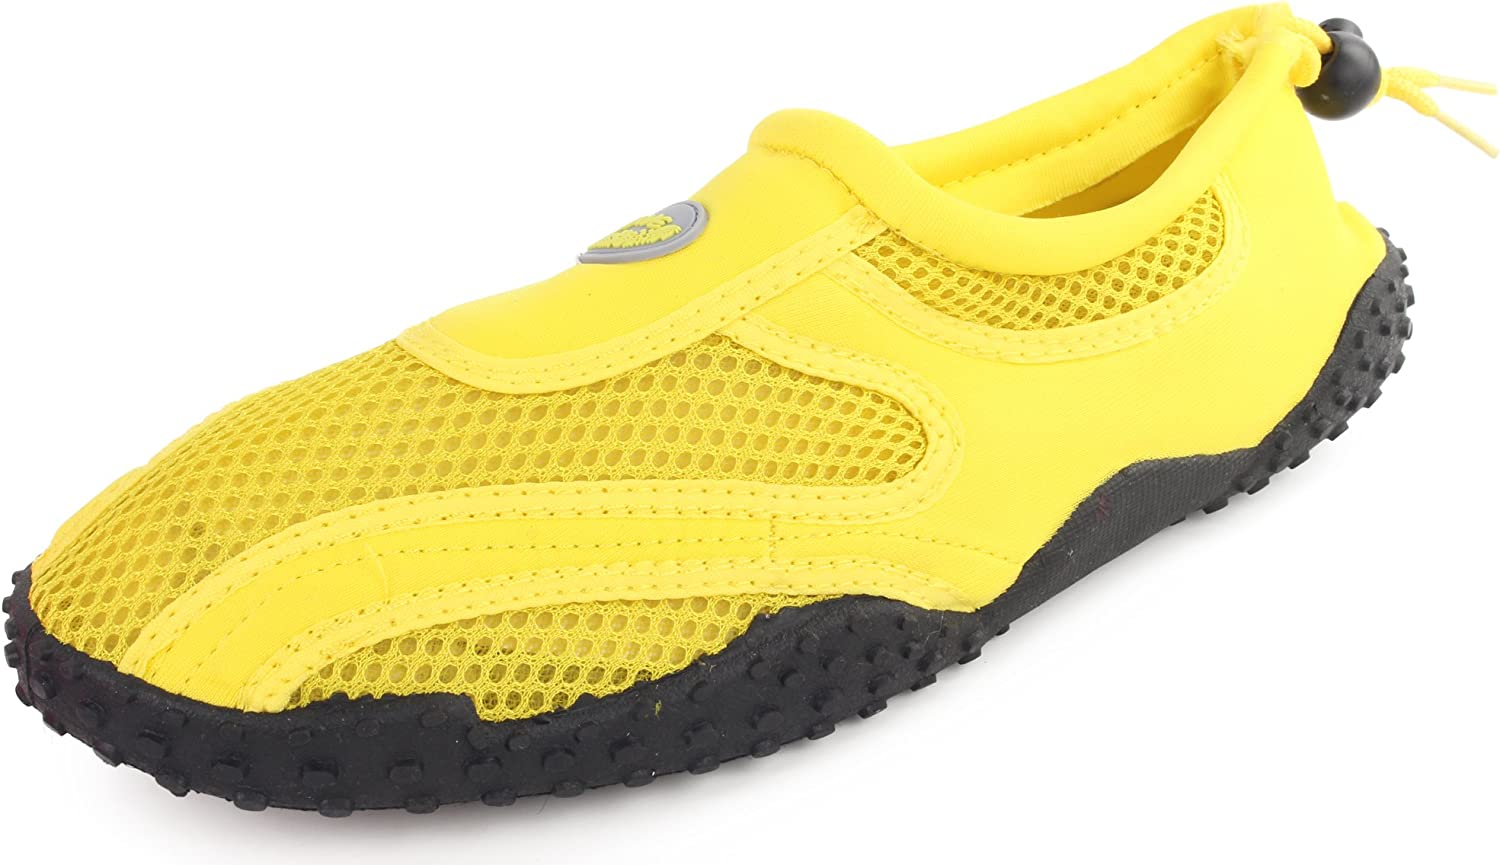 Enimay Men's Outdoor Stretch Nylon Mesh Rubber Sole Adjustable Sport Water shoes